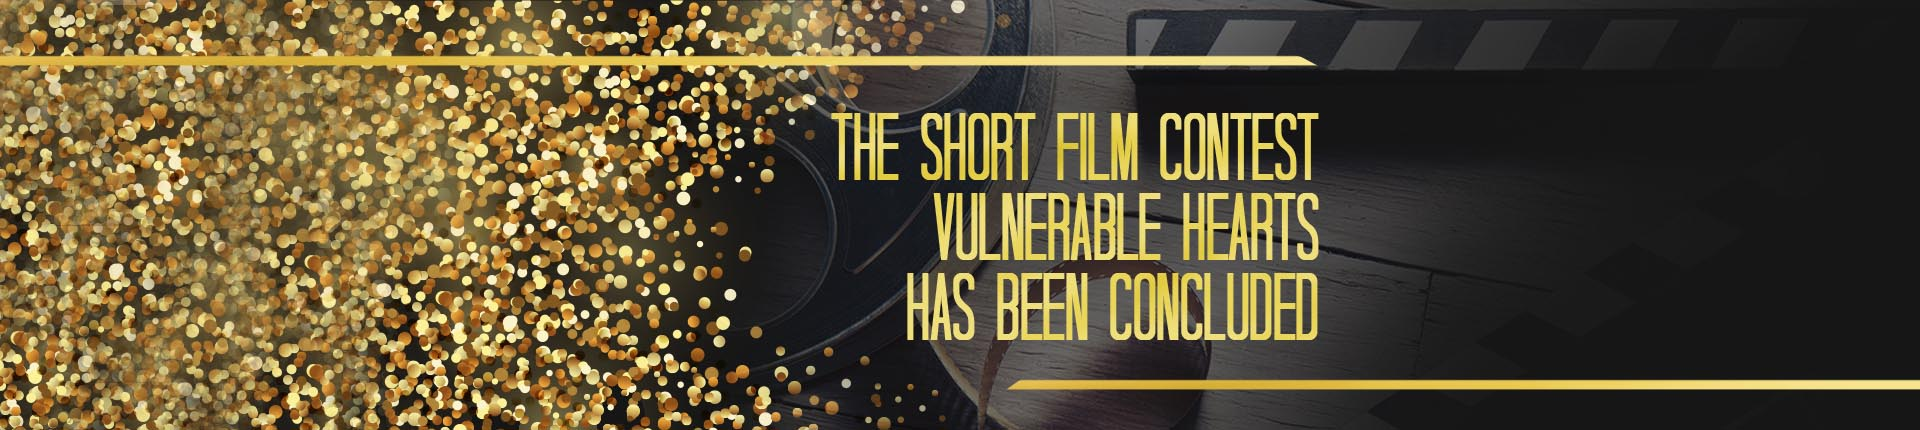 The Short Film Contest Vulnerable Hearts Has Been Conclued